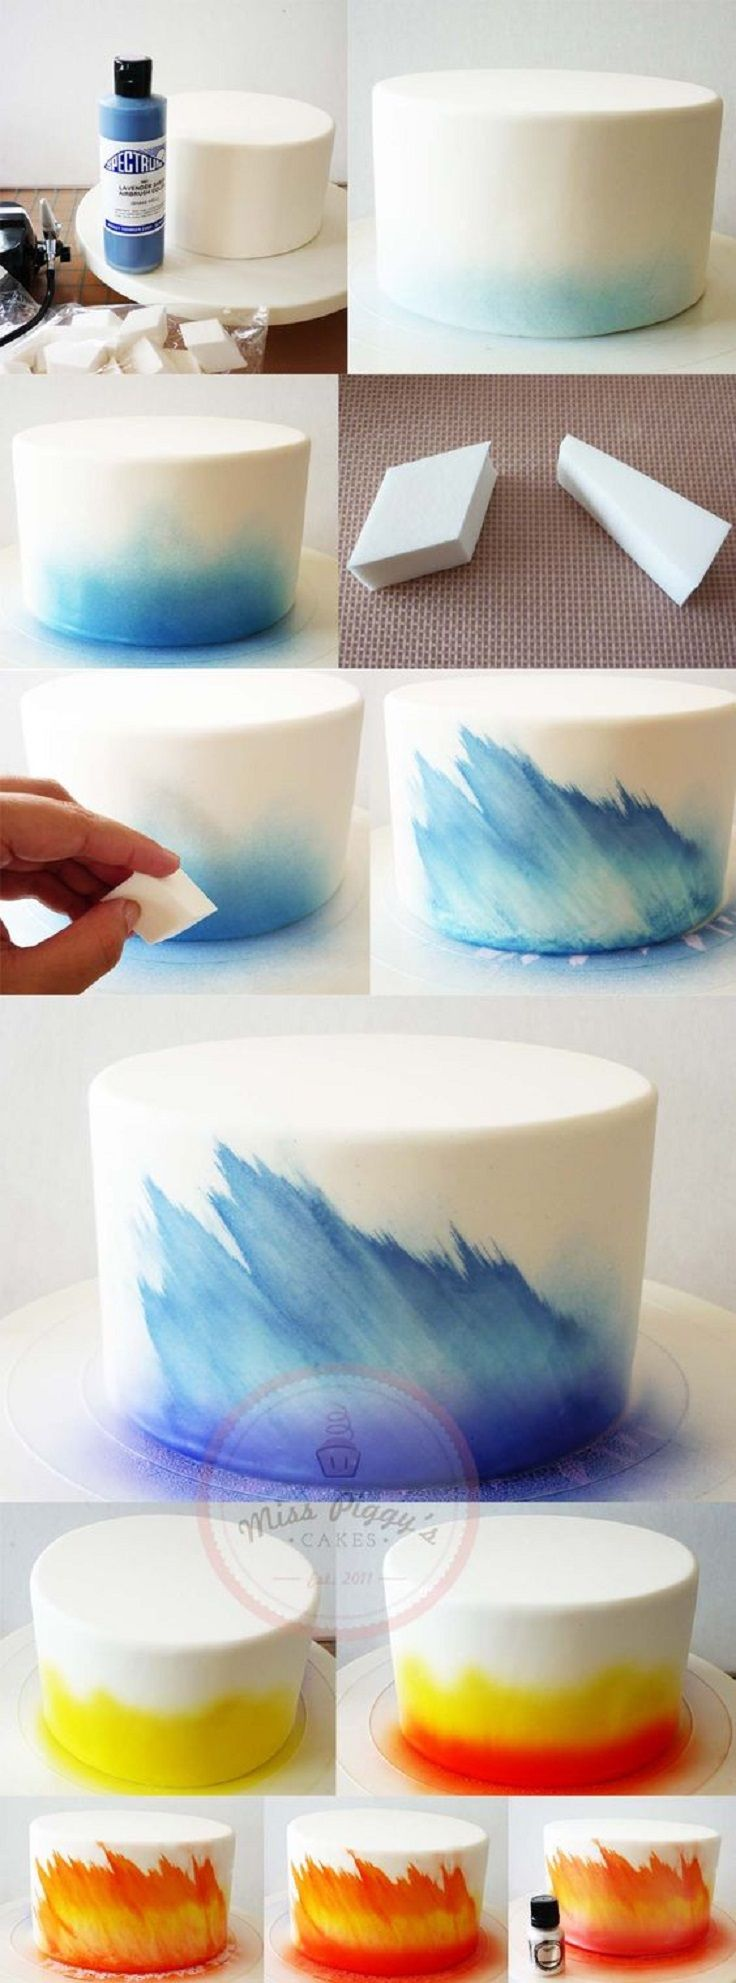 Cake Decorating Techniques Ideas : Best 25+ Cake boss cakes ideas on Pinterest